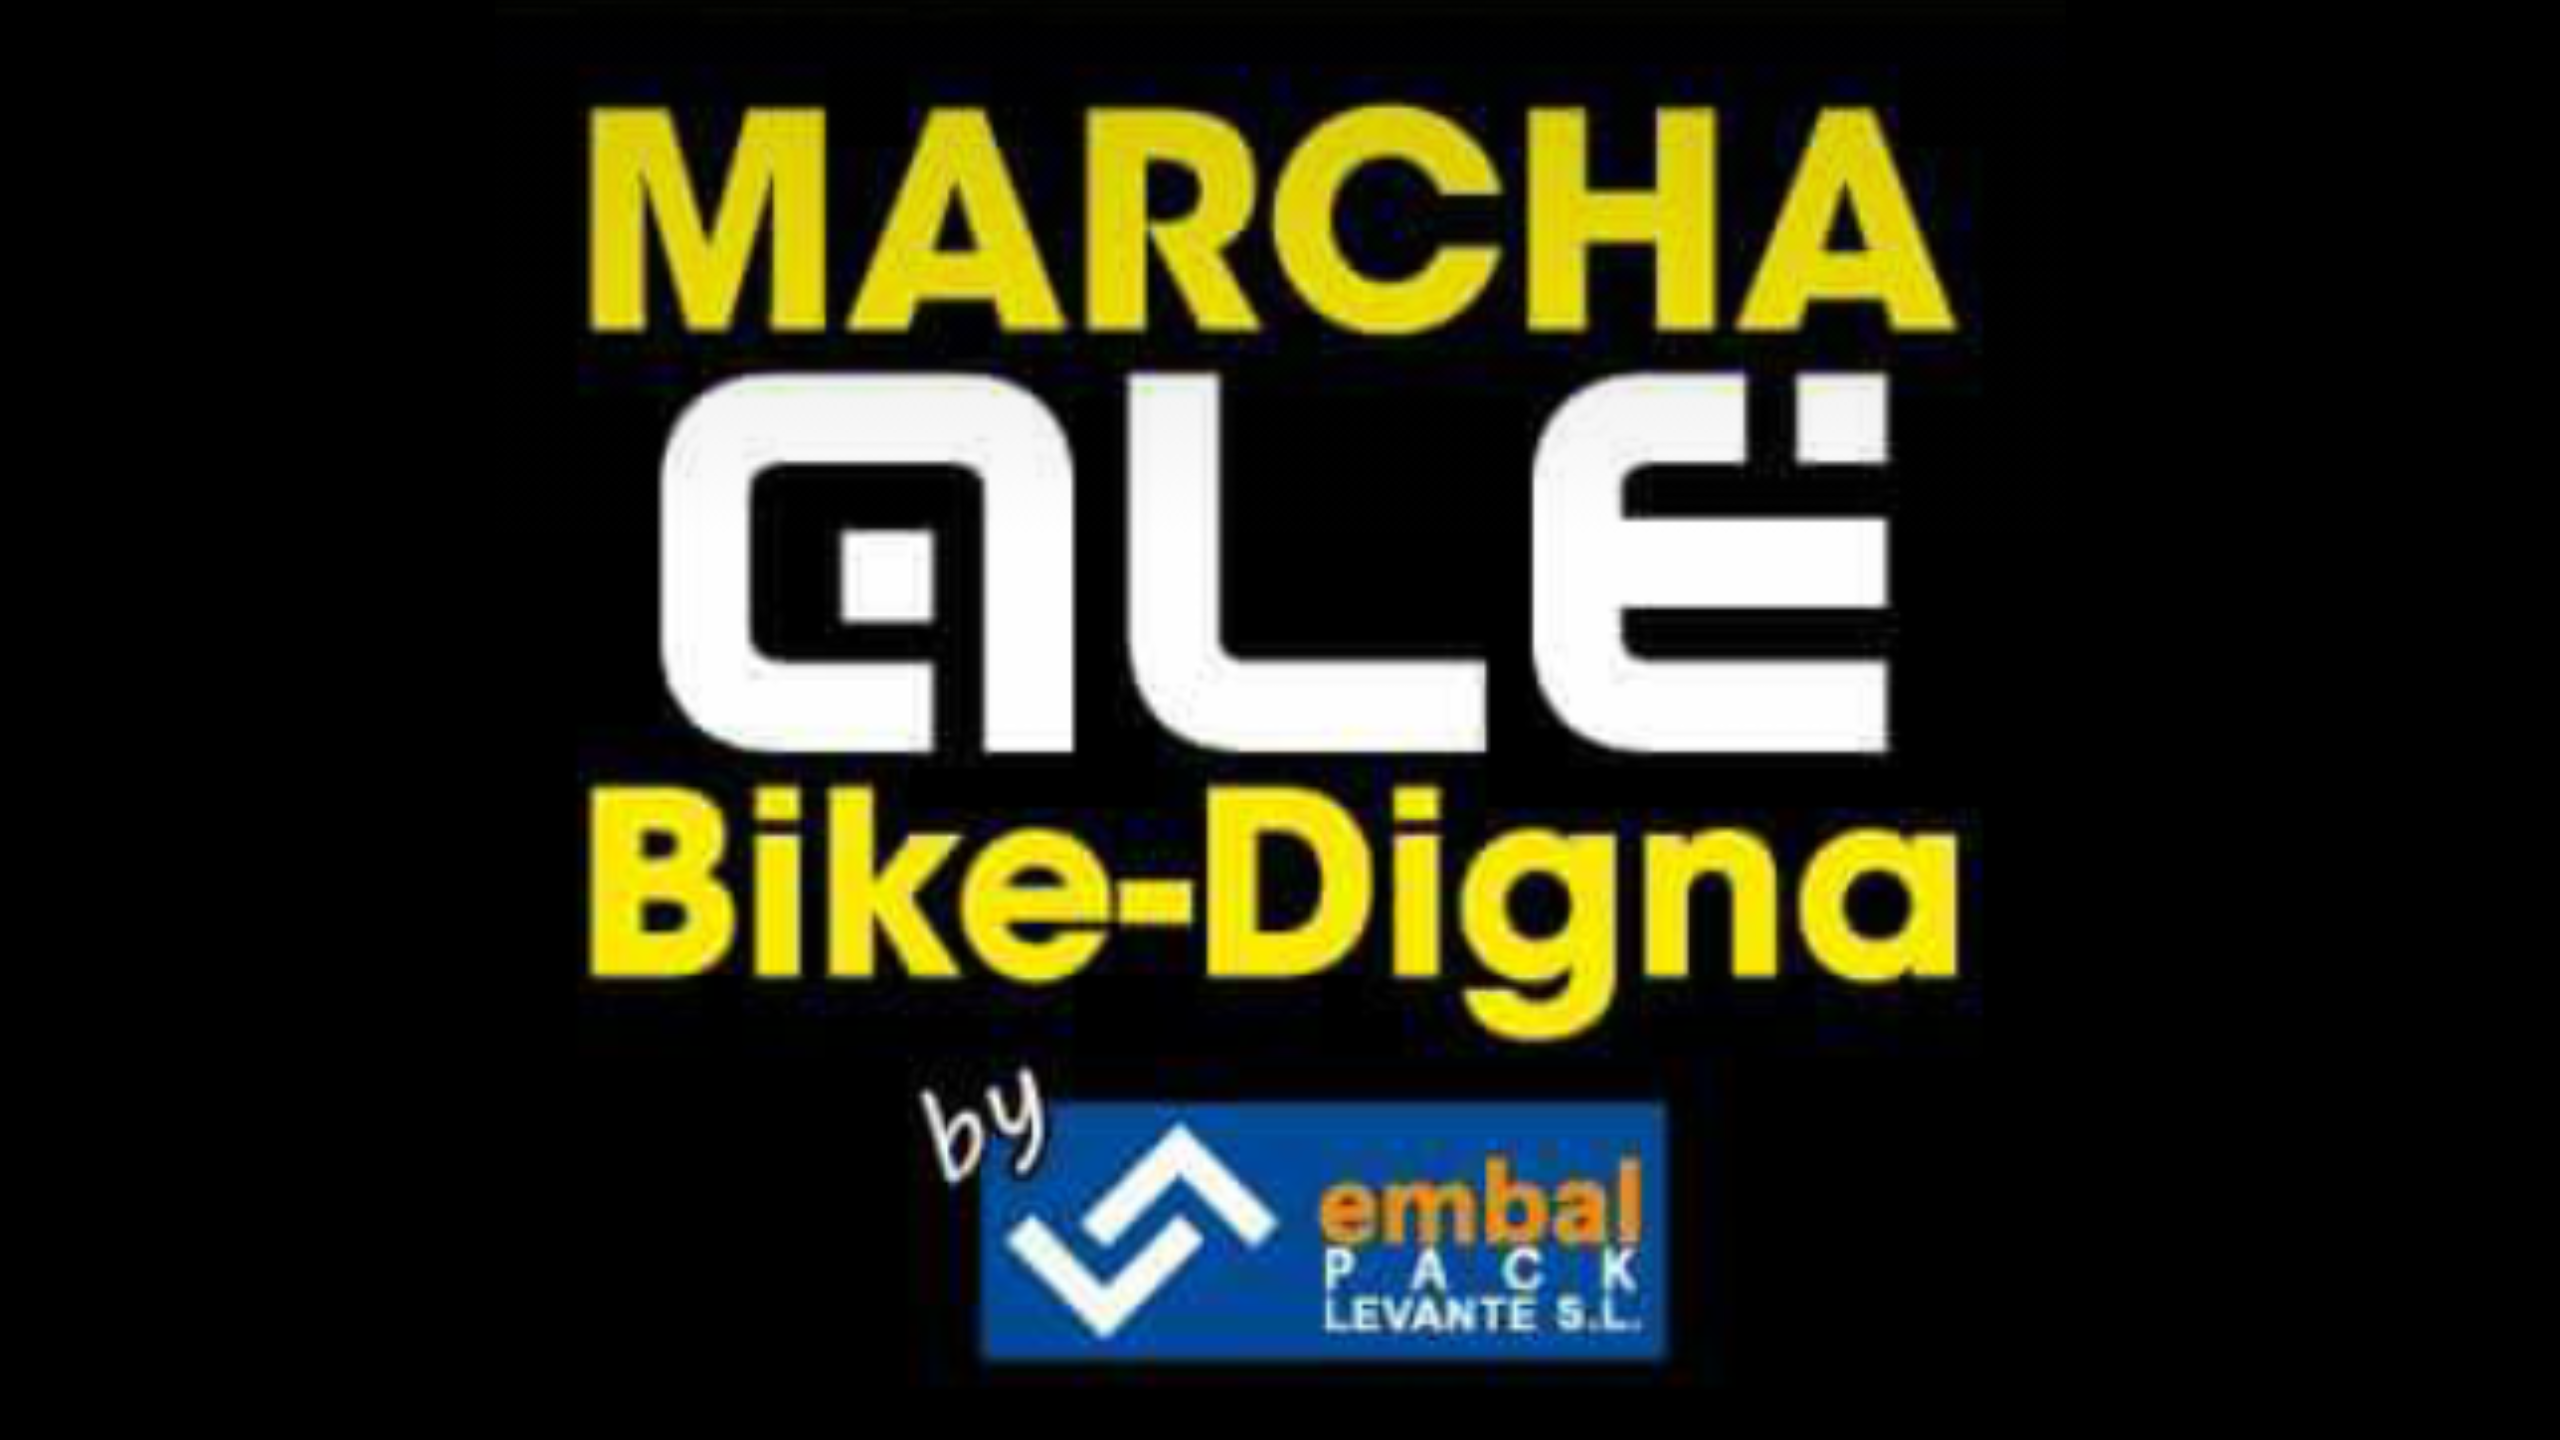 Marcha ALE Bike-Digna by Embalpack Levante